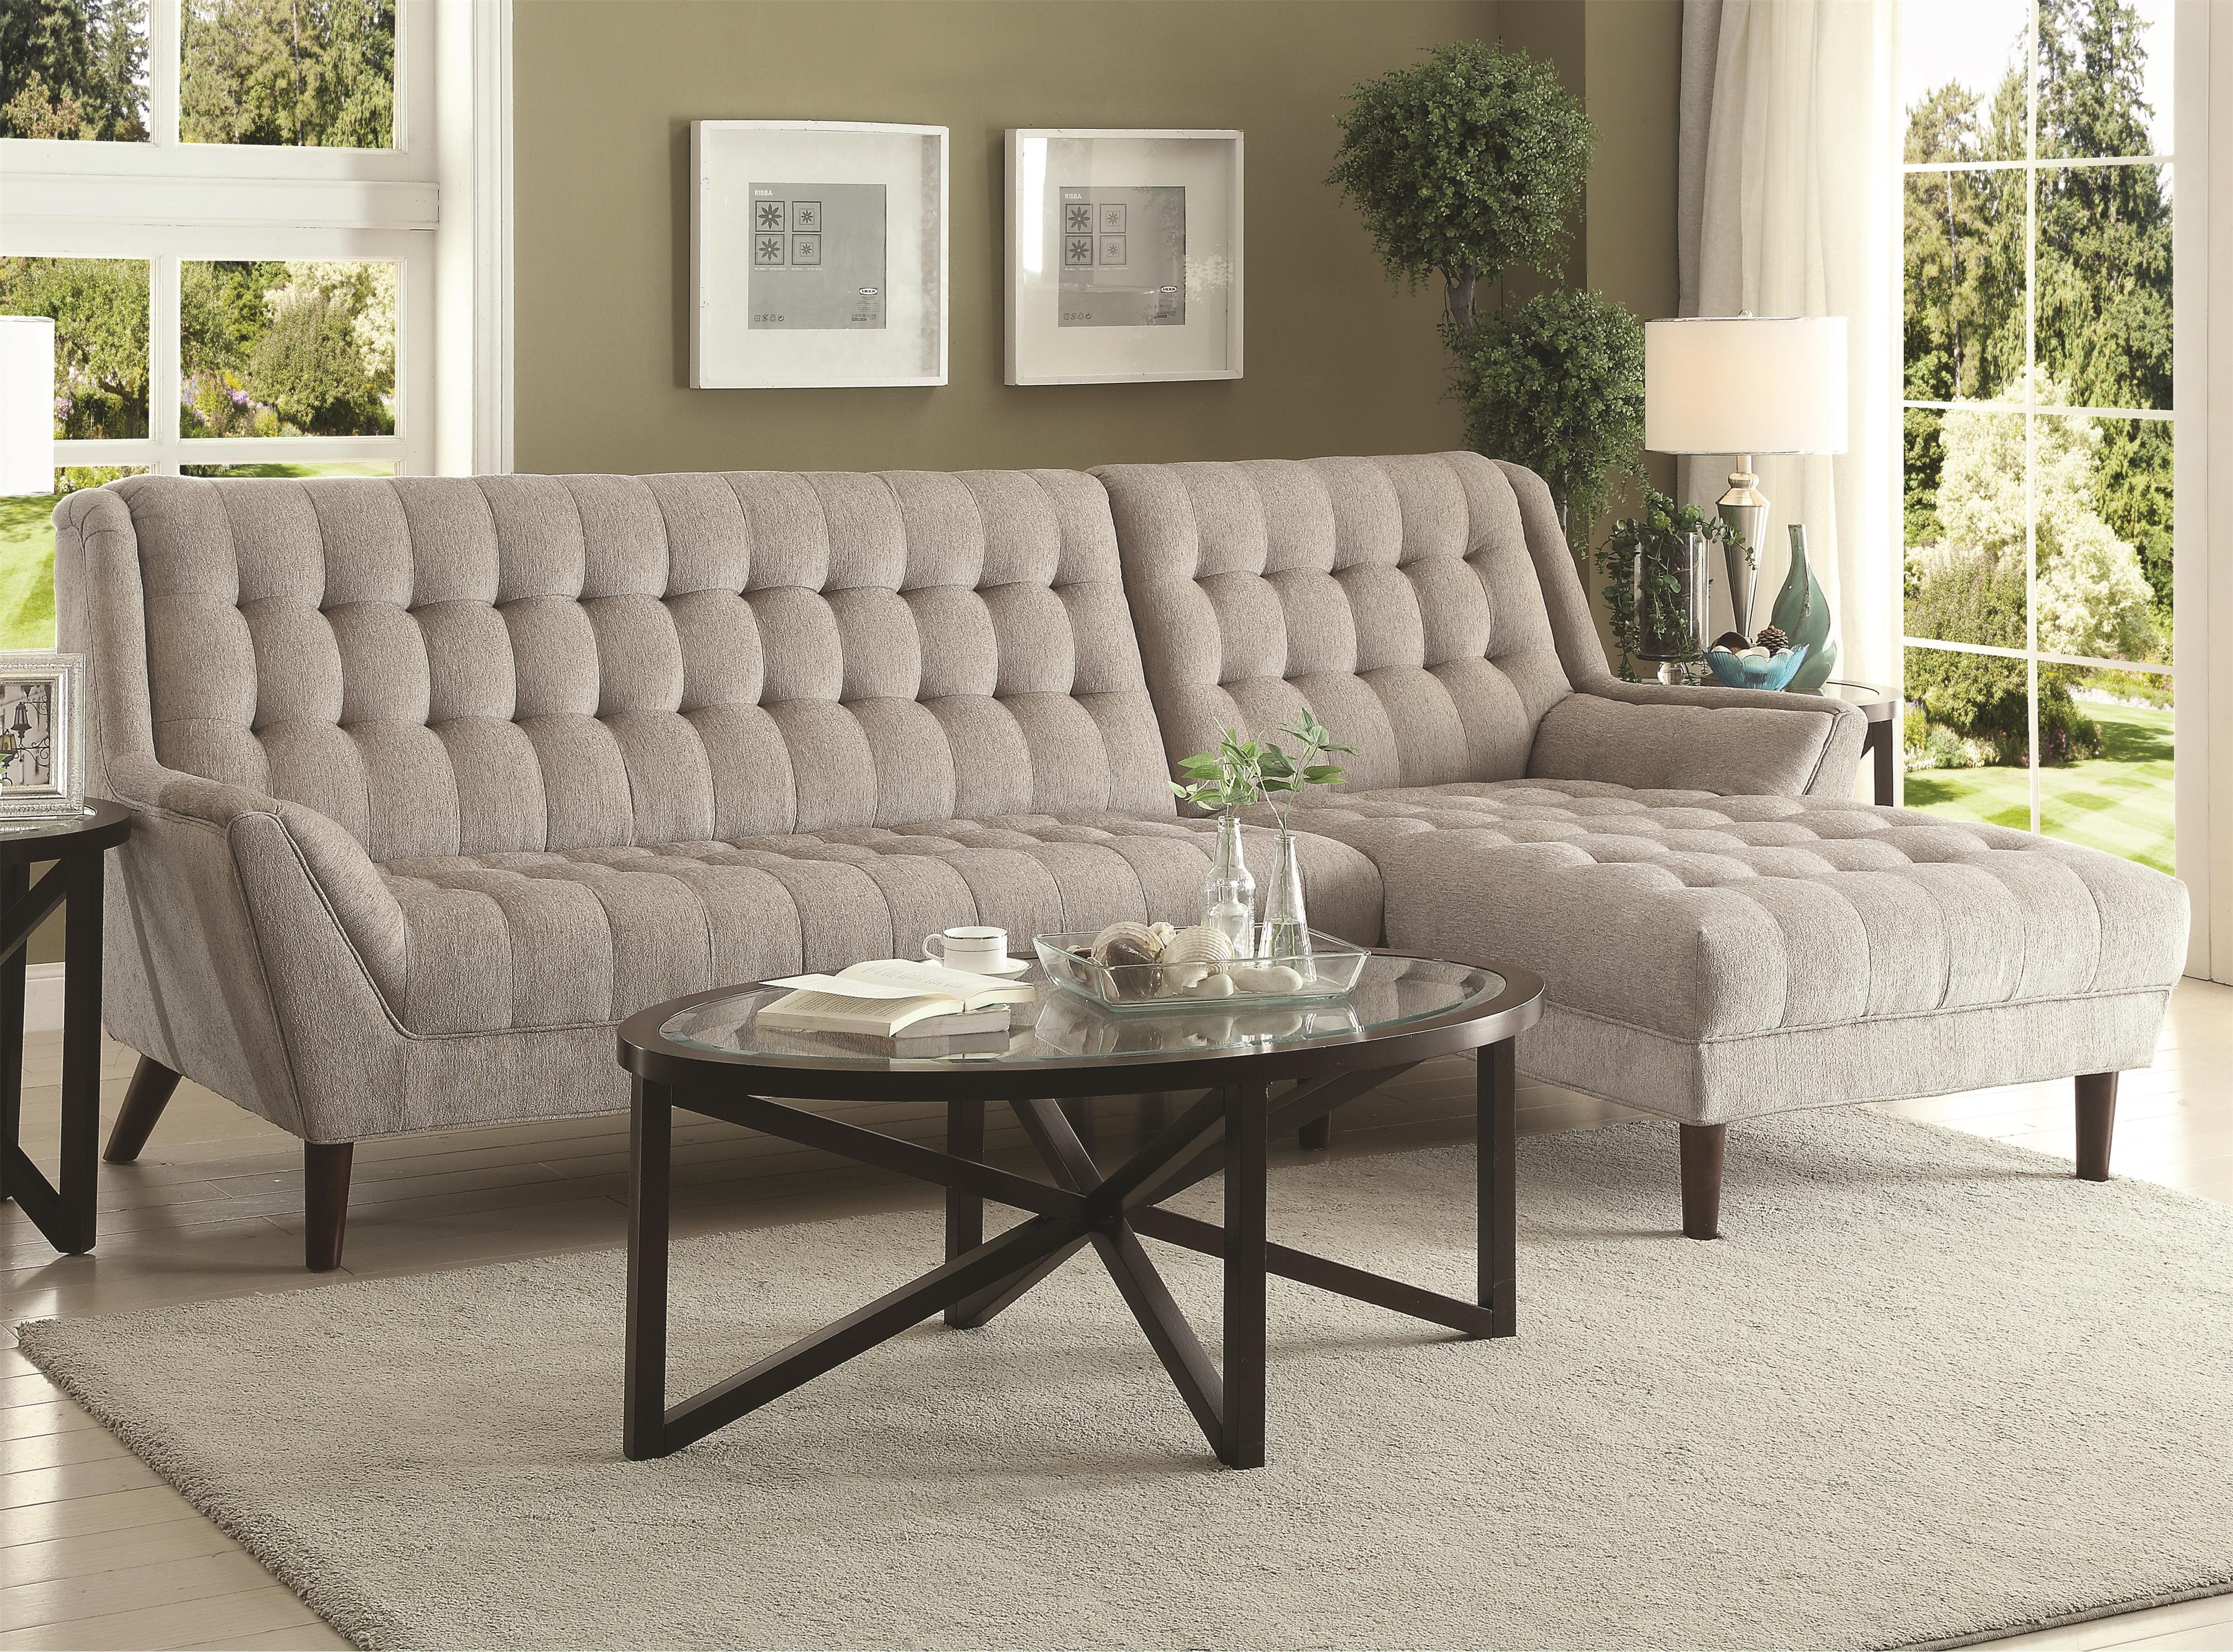 Orson Sofa Room And Board Perfect Scroll To Next Item With Orson